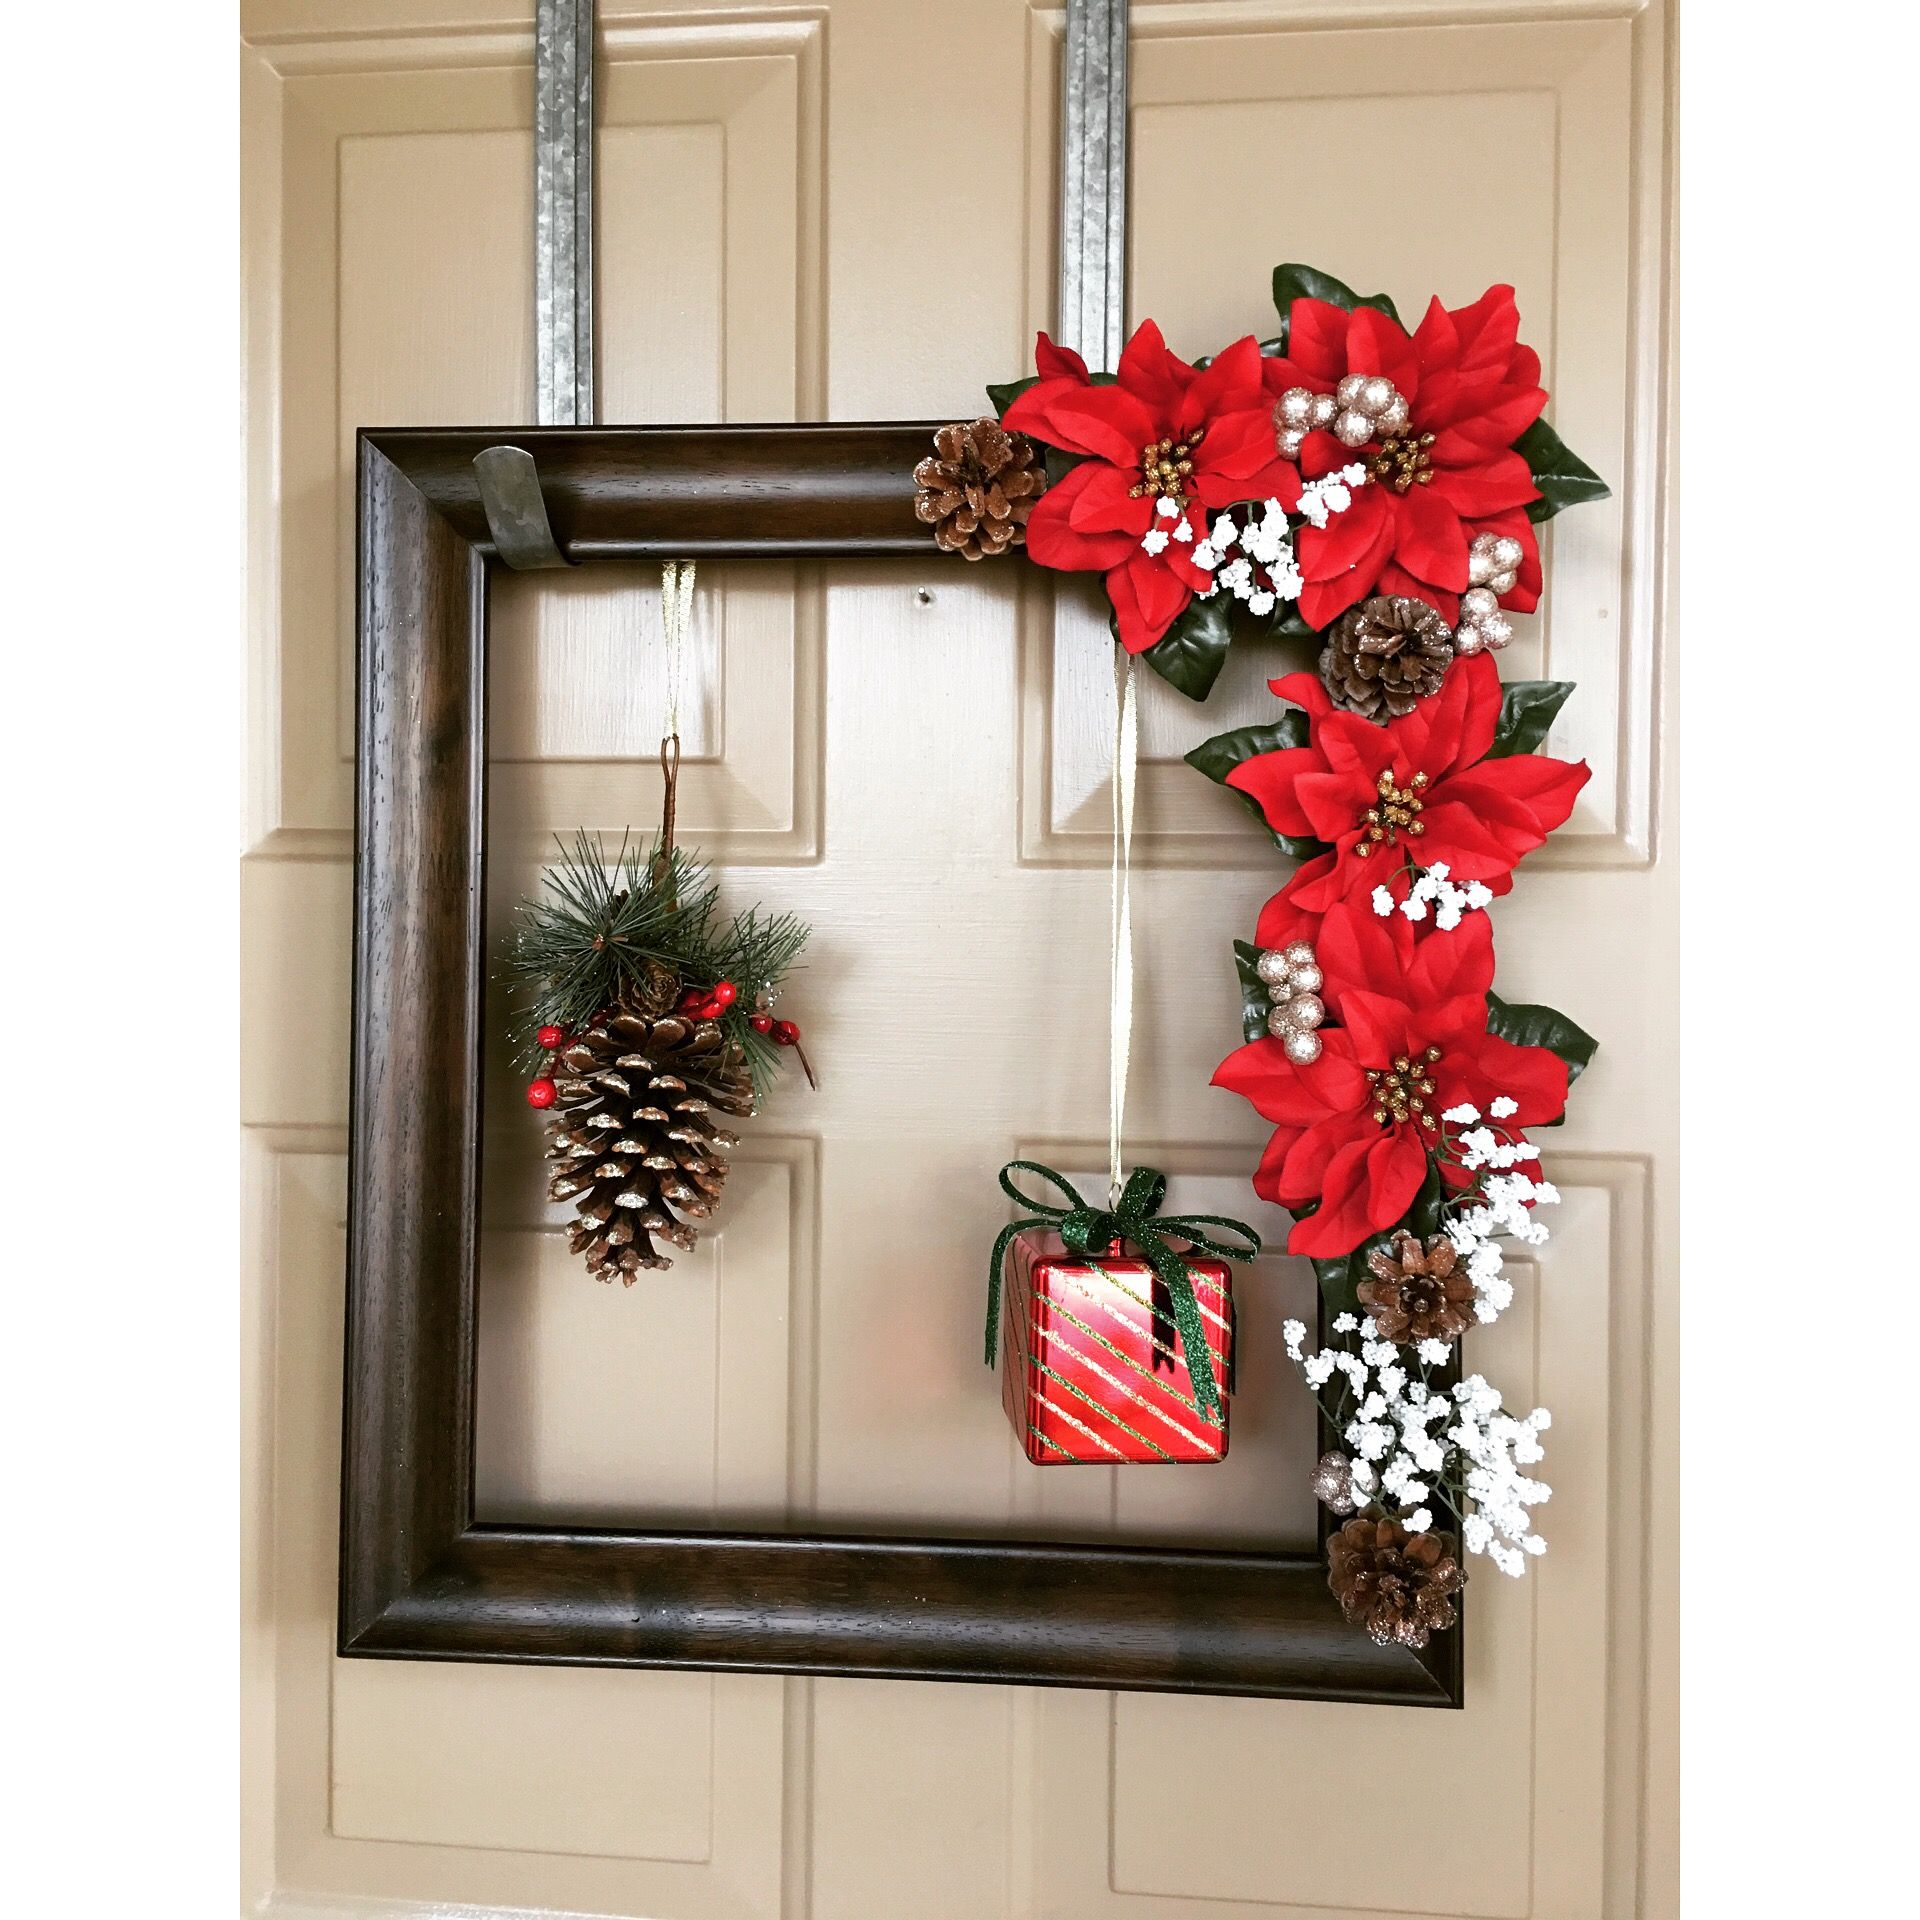 Diy Holiday Frame For The Door Frame Target Flowers, Ornaments,